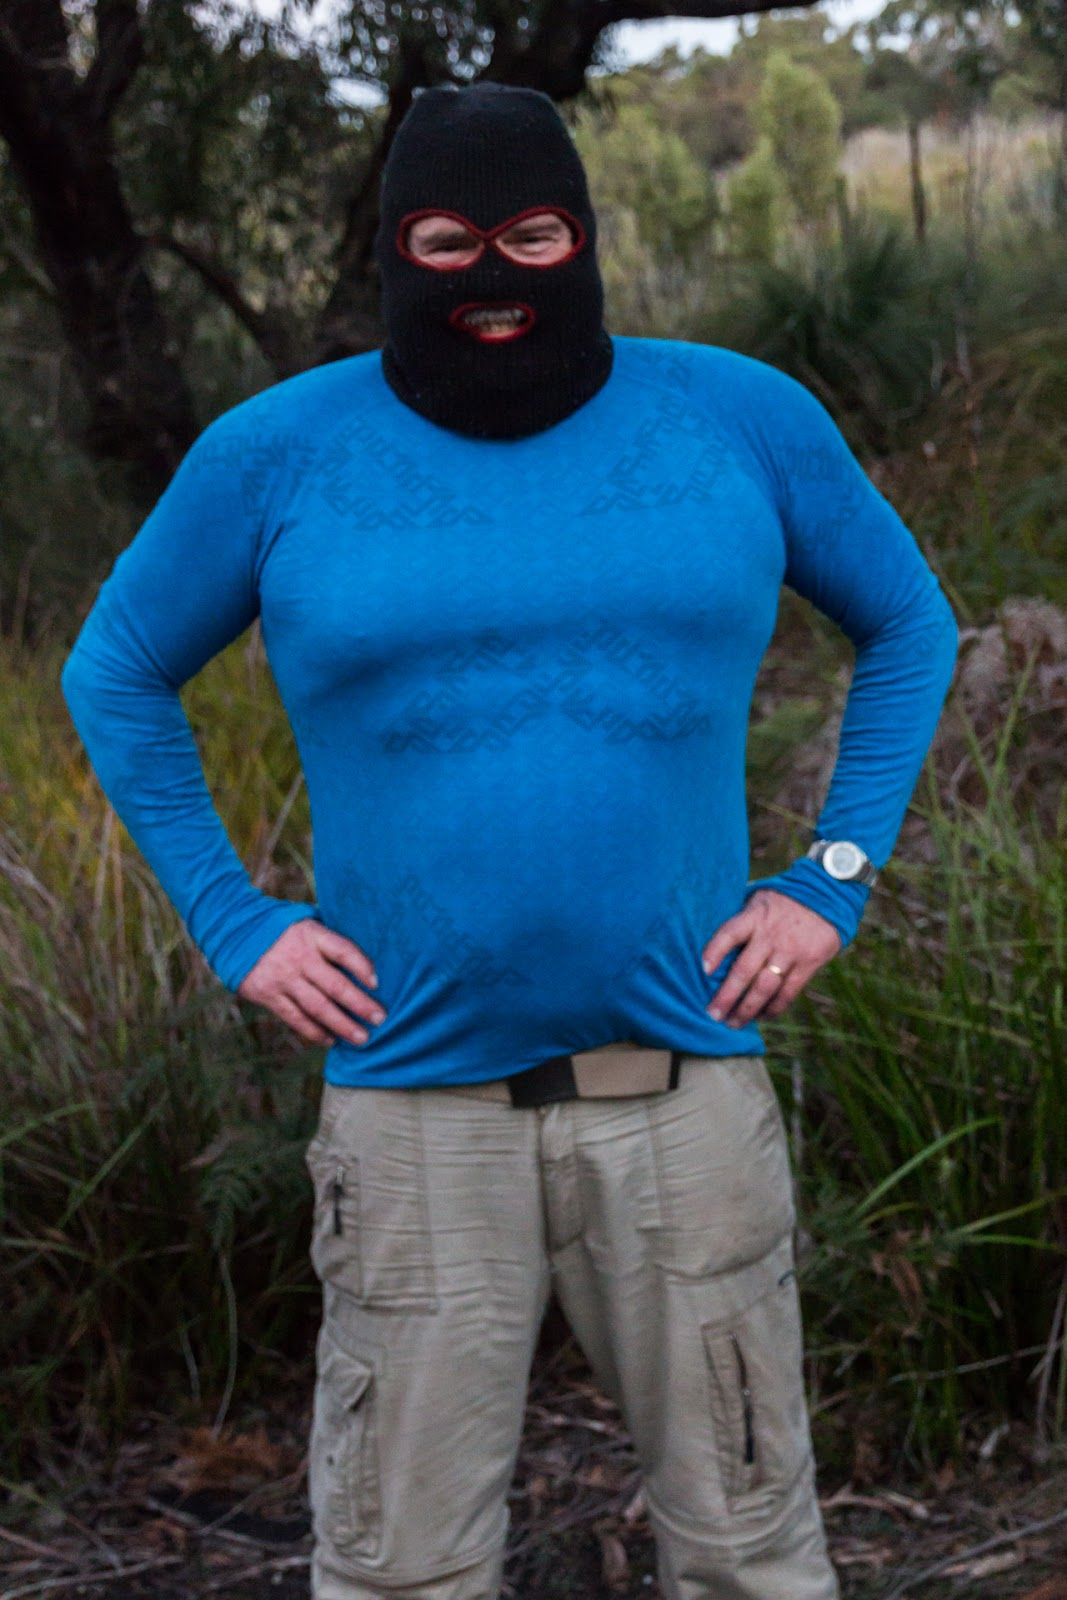 man wearing balaclava